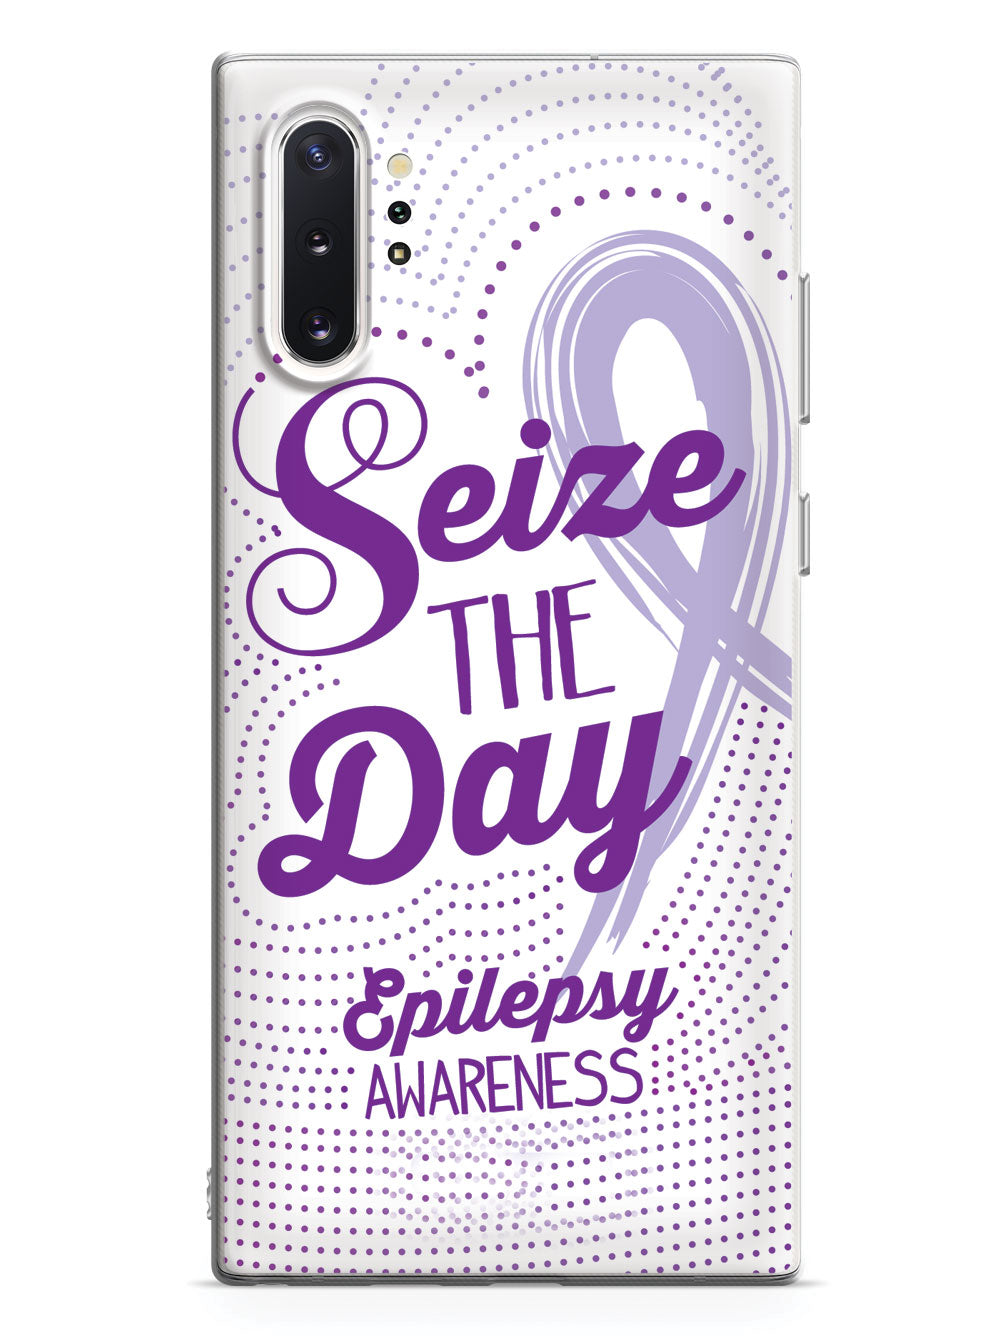 Seize the Day, Epilepsy Awareness Case